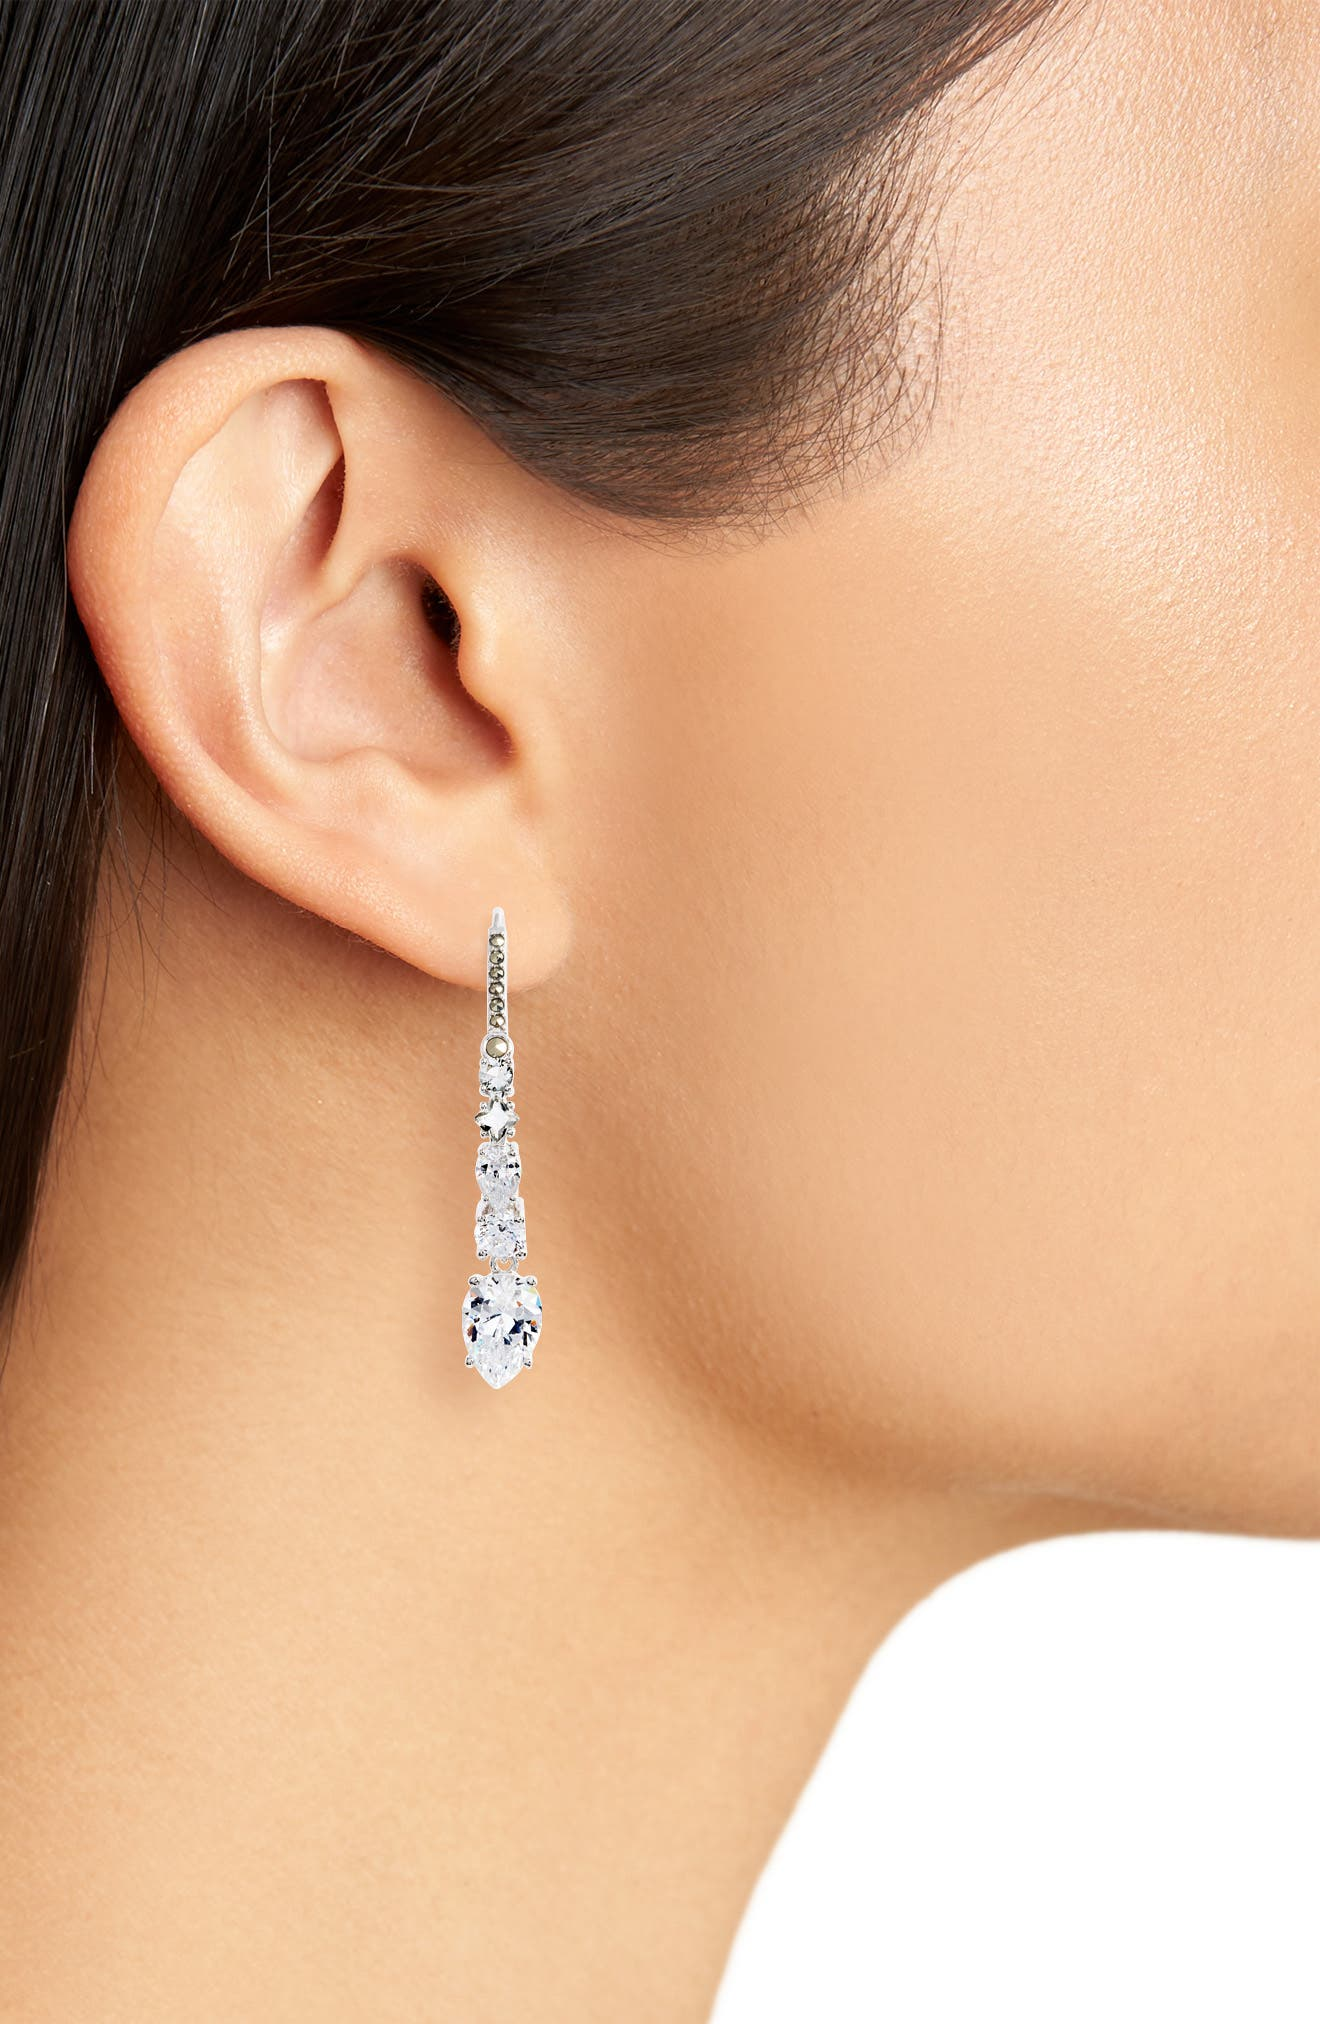 Cubic Zirconia Threader Earrings,                             Alternate thumbnail 2, color,                             Silver